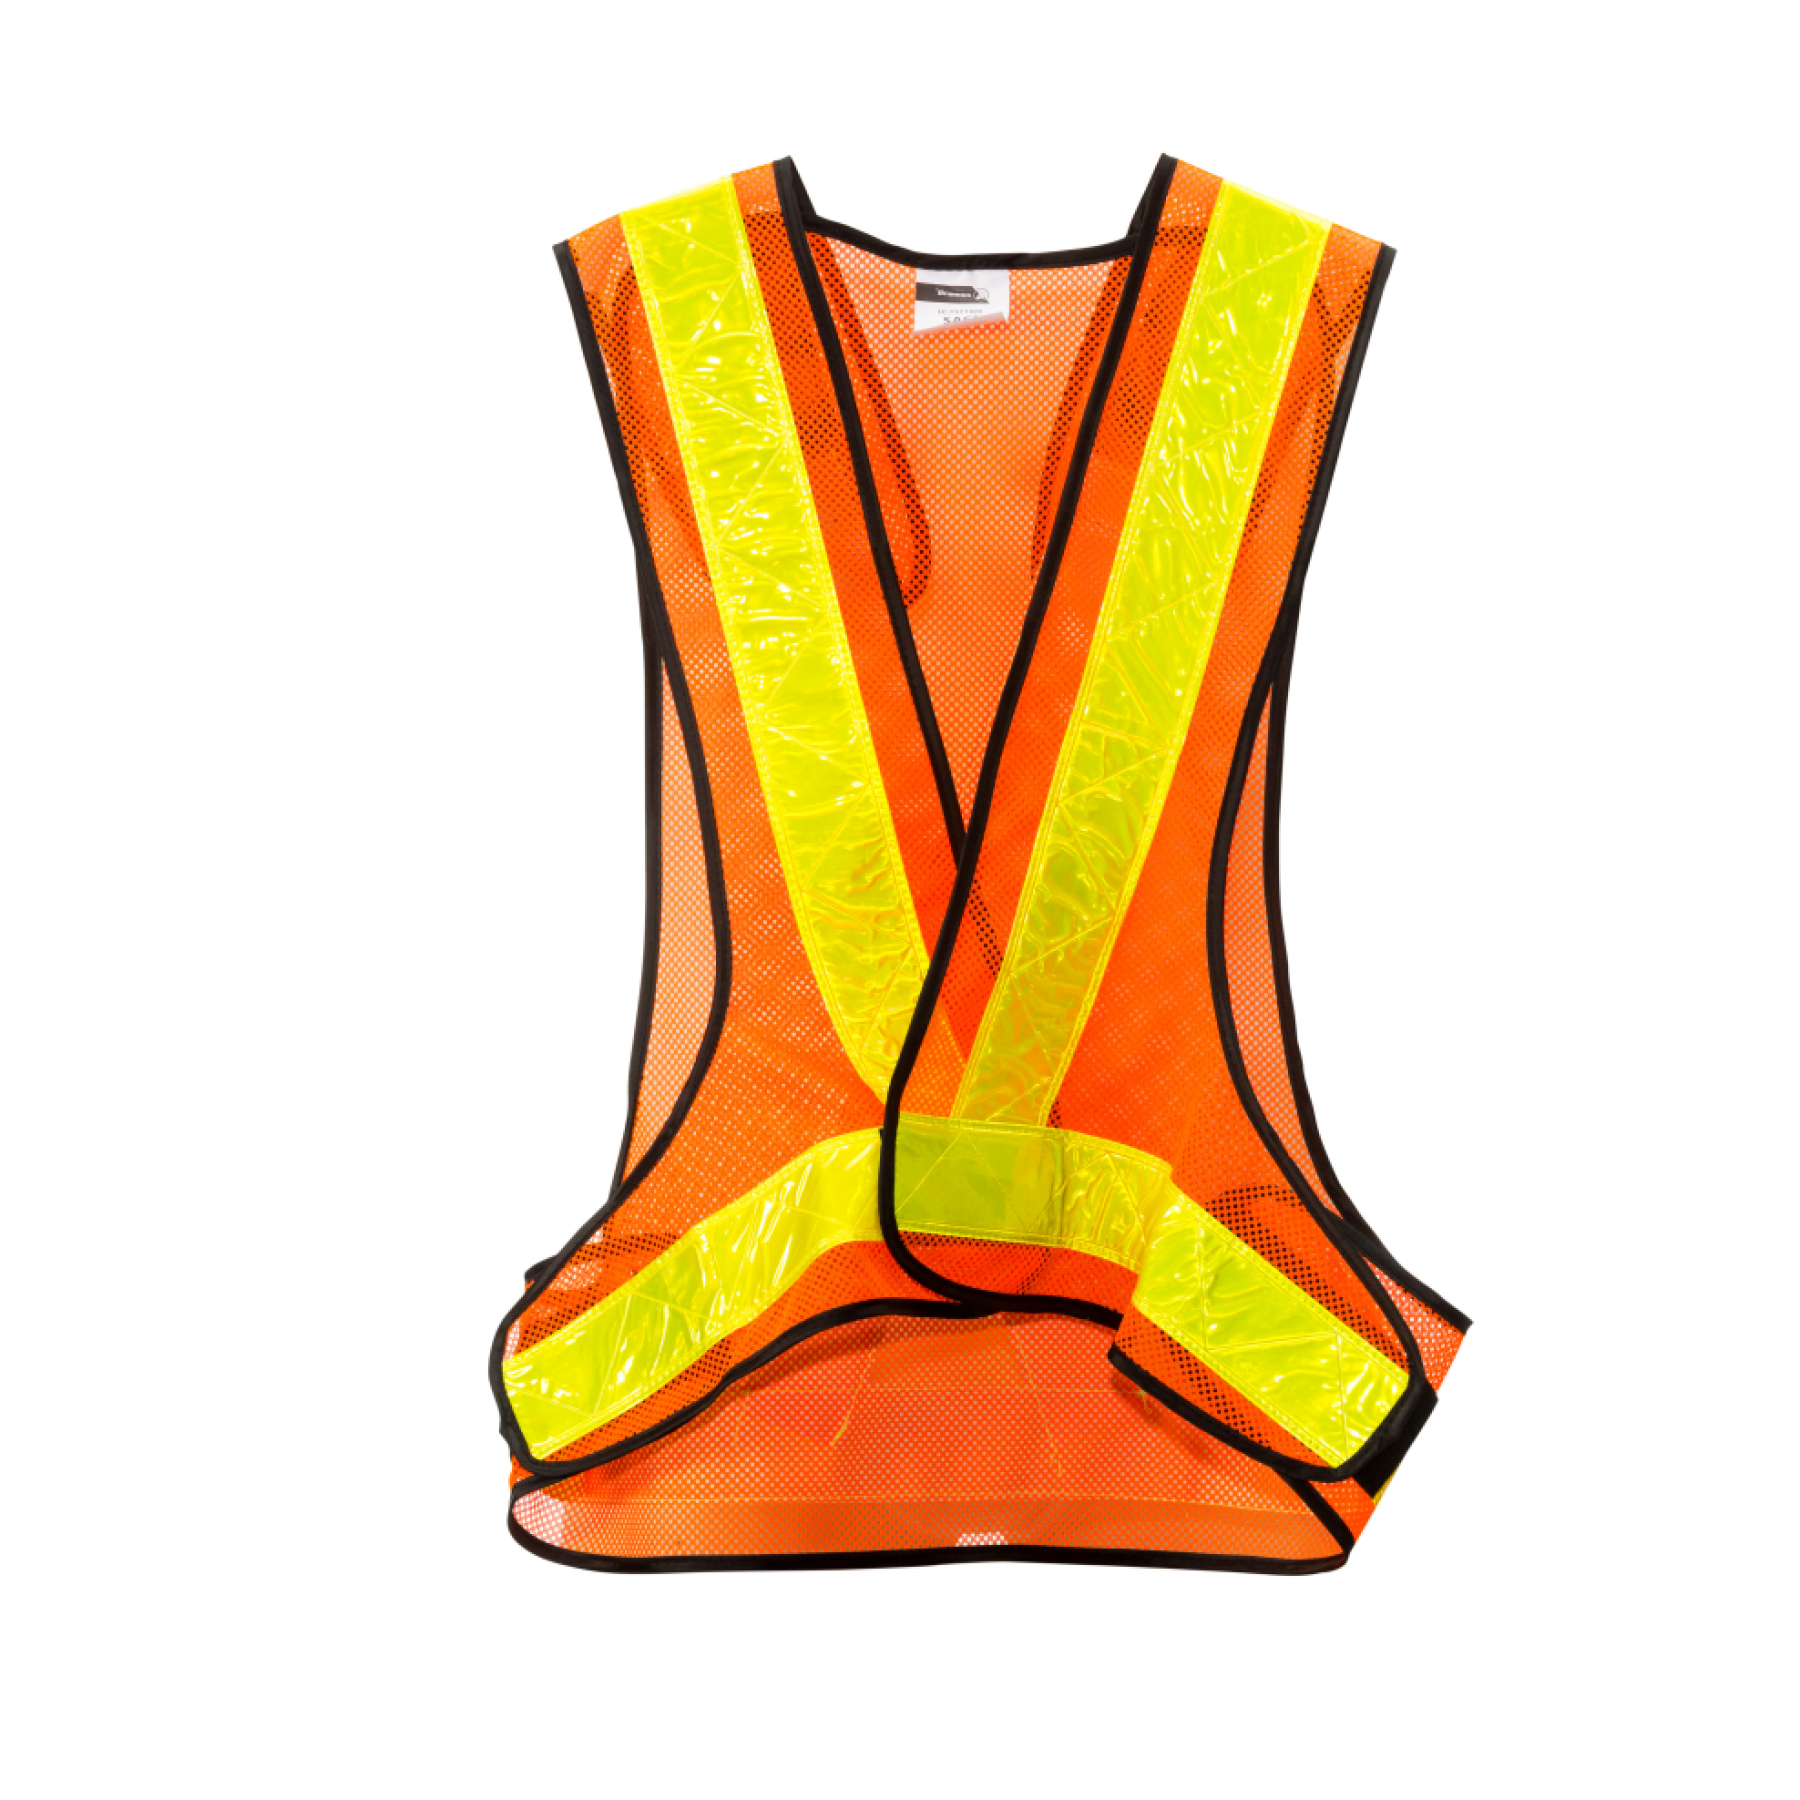 Orange Reflective Vest, Yellow Tape, Adjustable